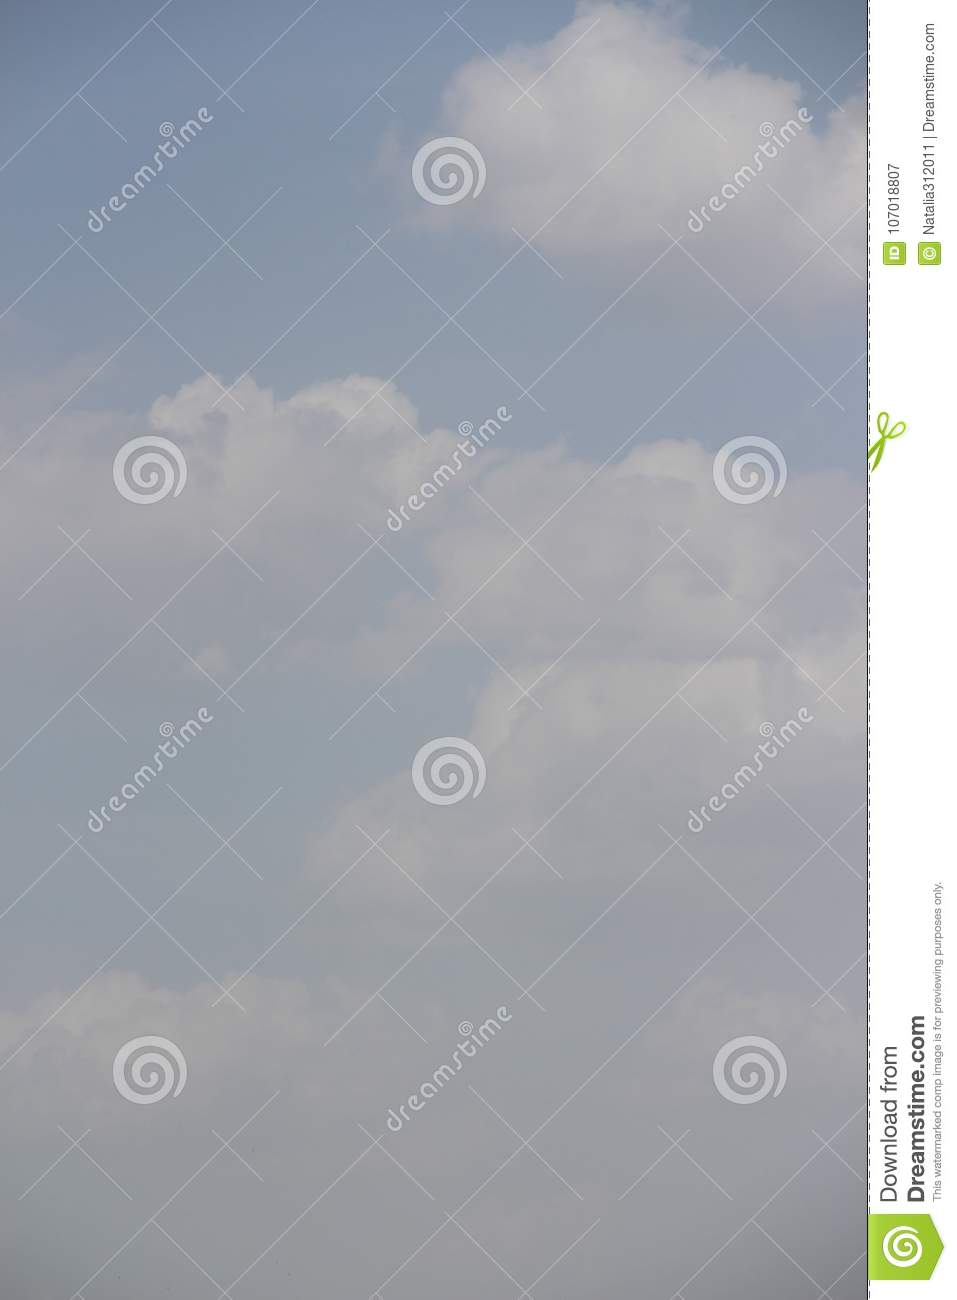 clear blue daylight sky with white clouds and sunlight stock image